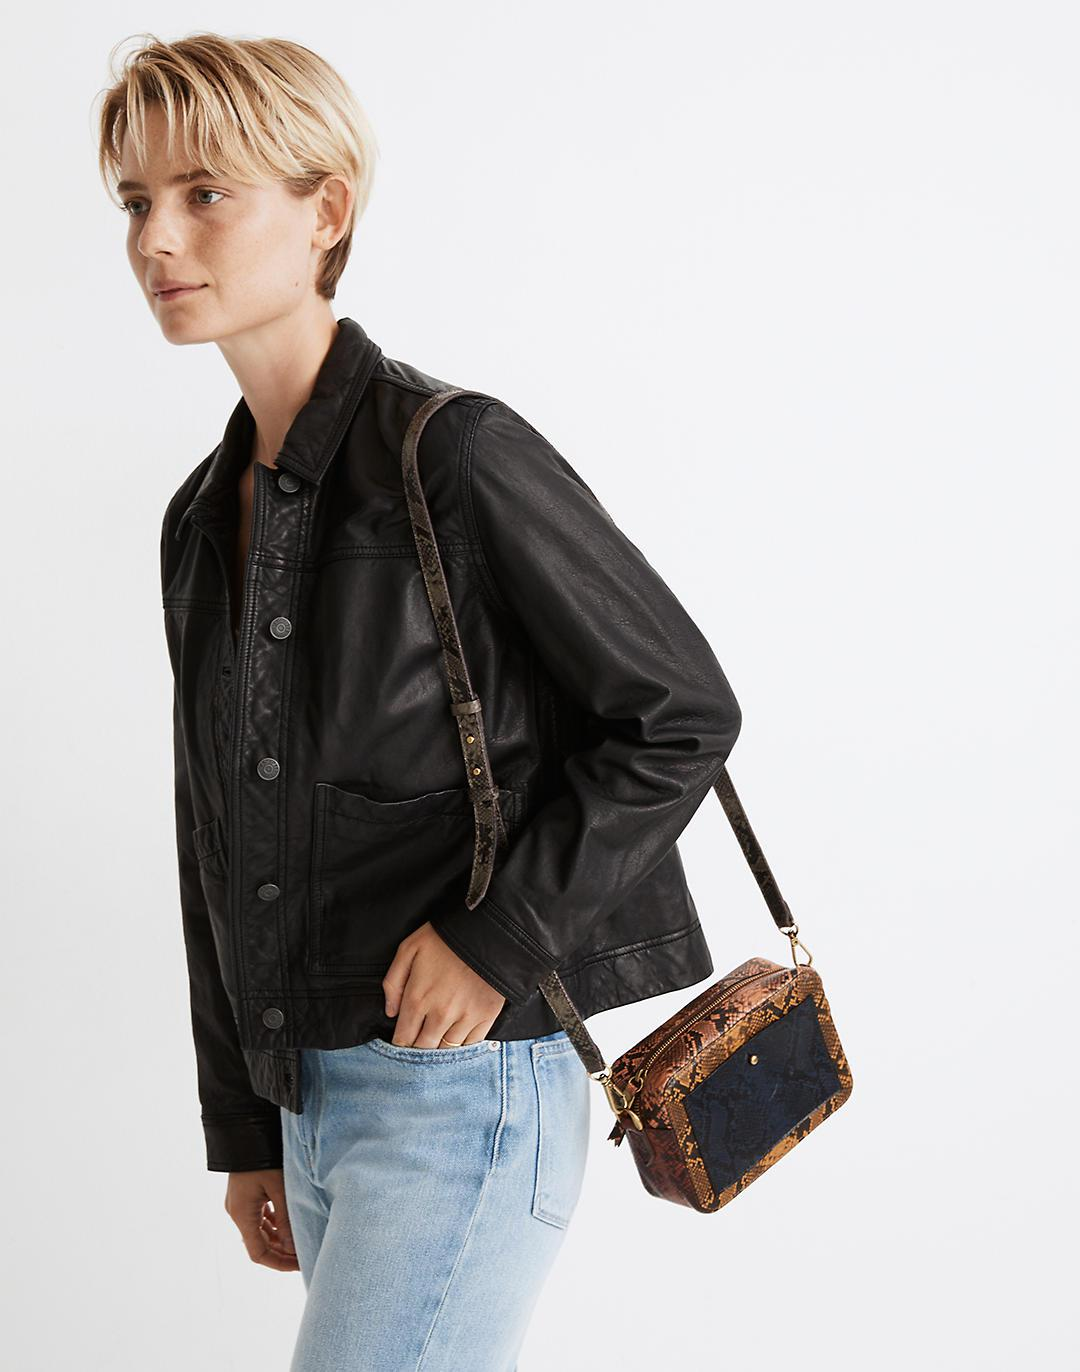 Madewell: 20% Off Purchase Today